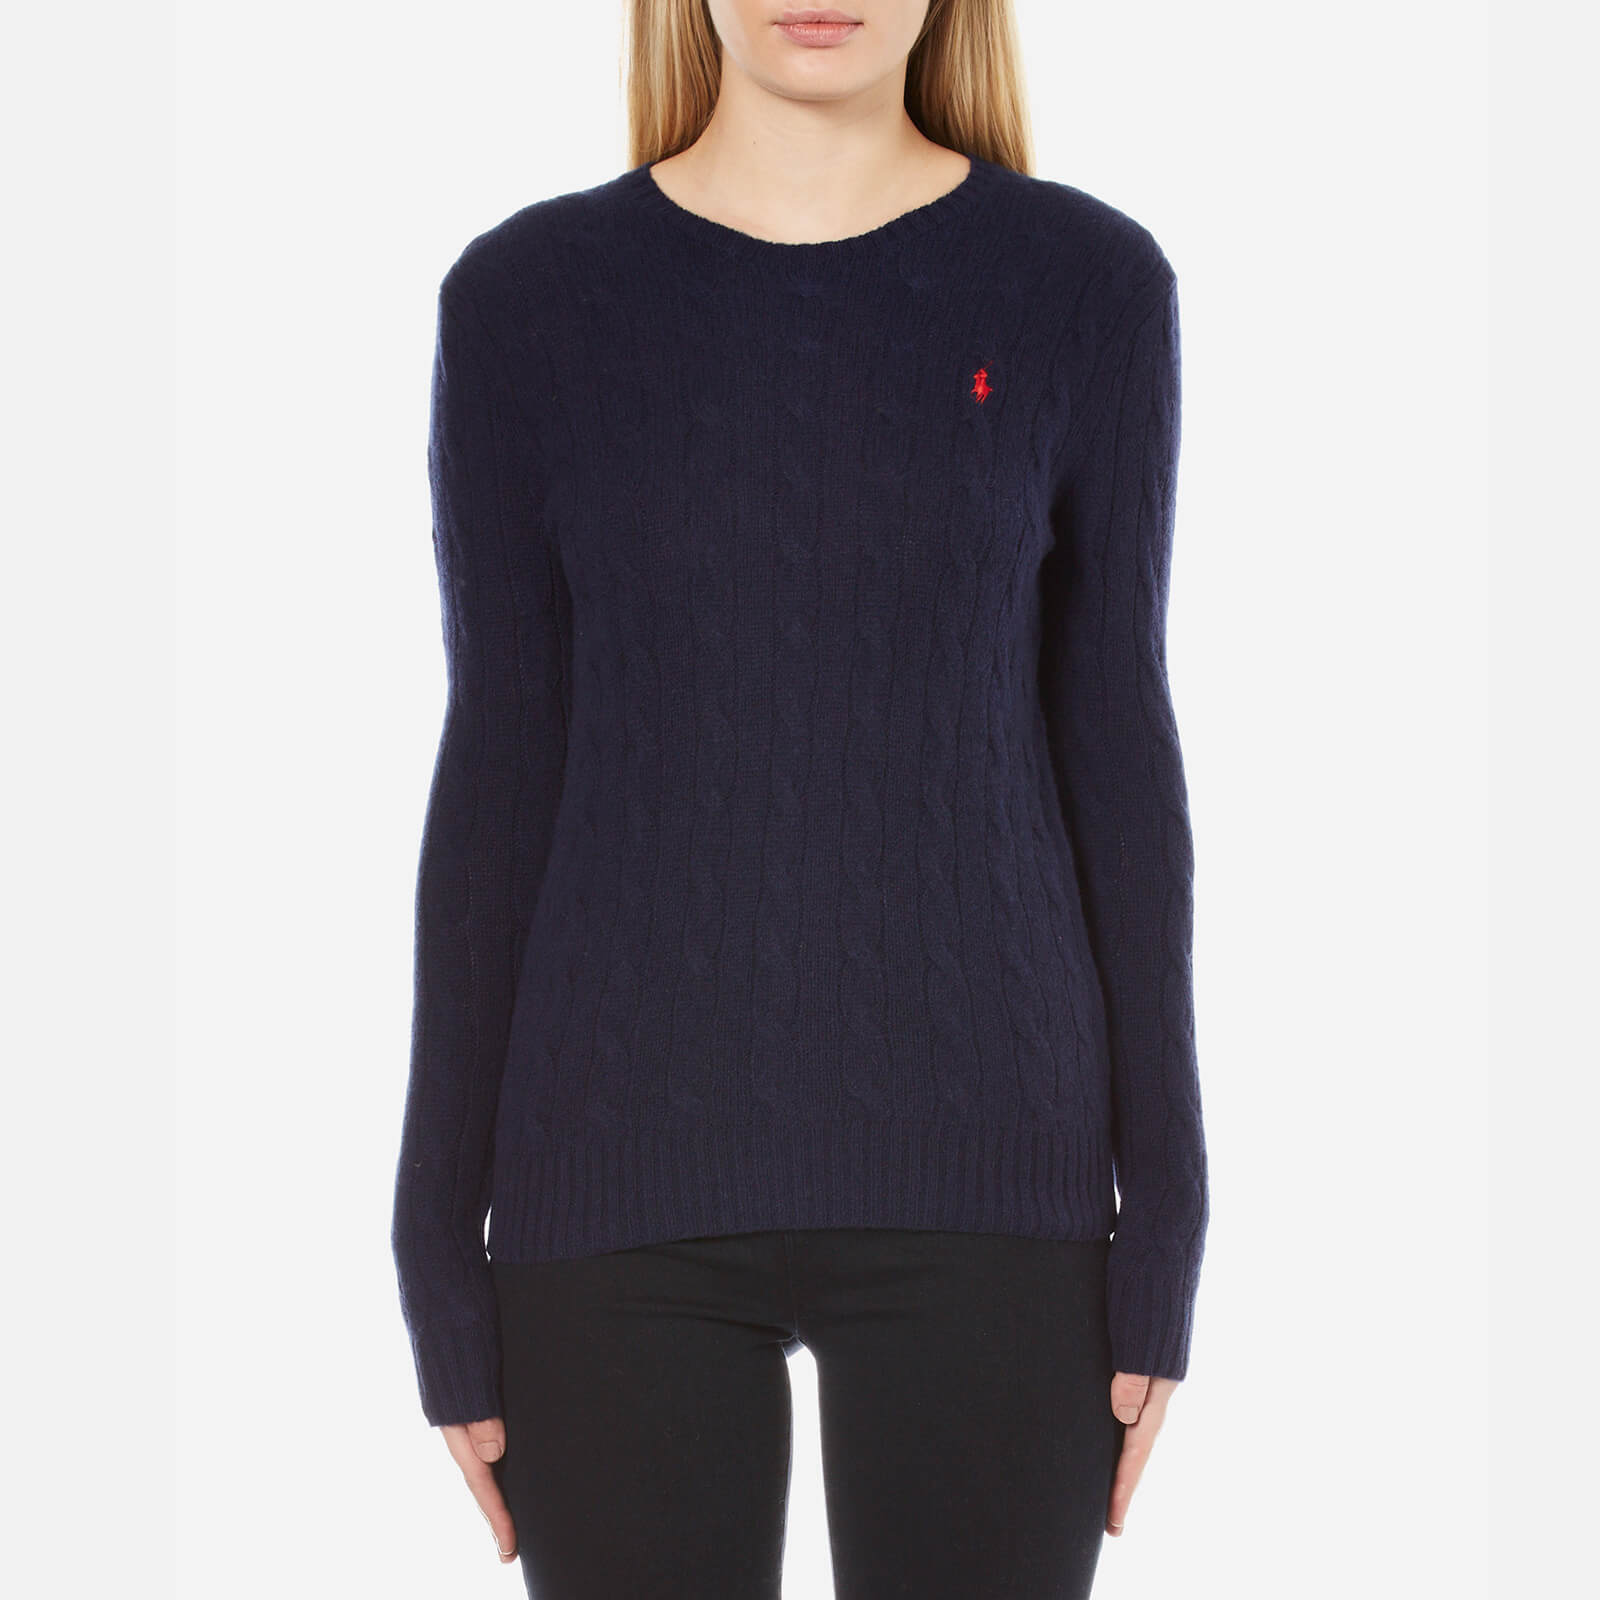 979a364628ae Polo Ralph Lauren Women's Julianna Crew Neck Jumper Cashmere Blend - Hunter  Navy - Free UK Delivery over £50